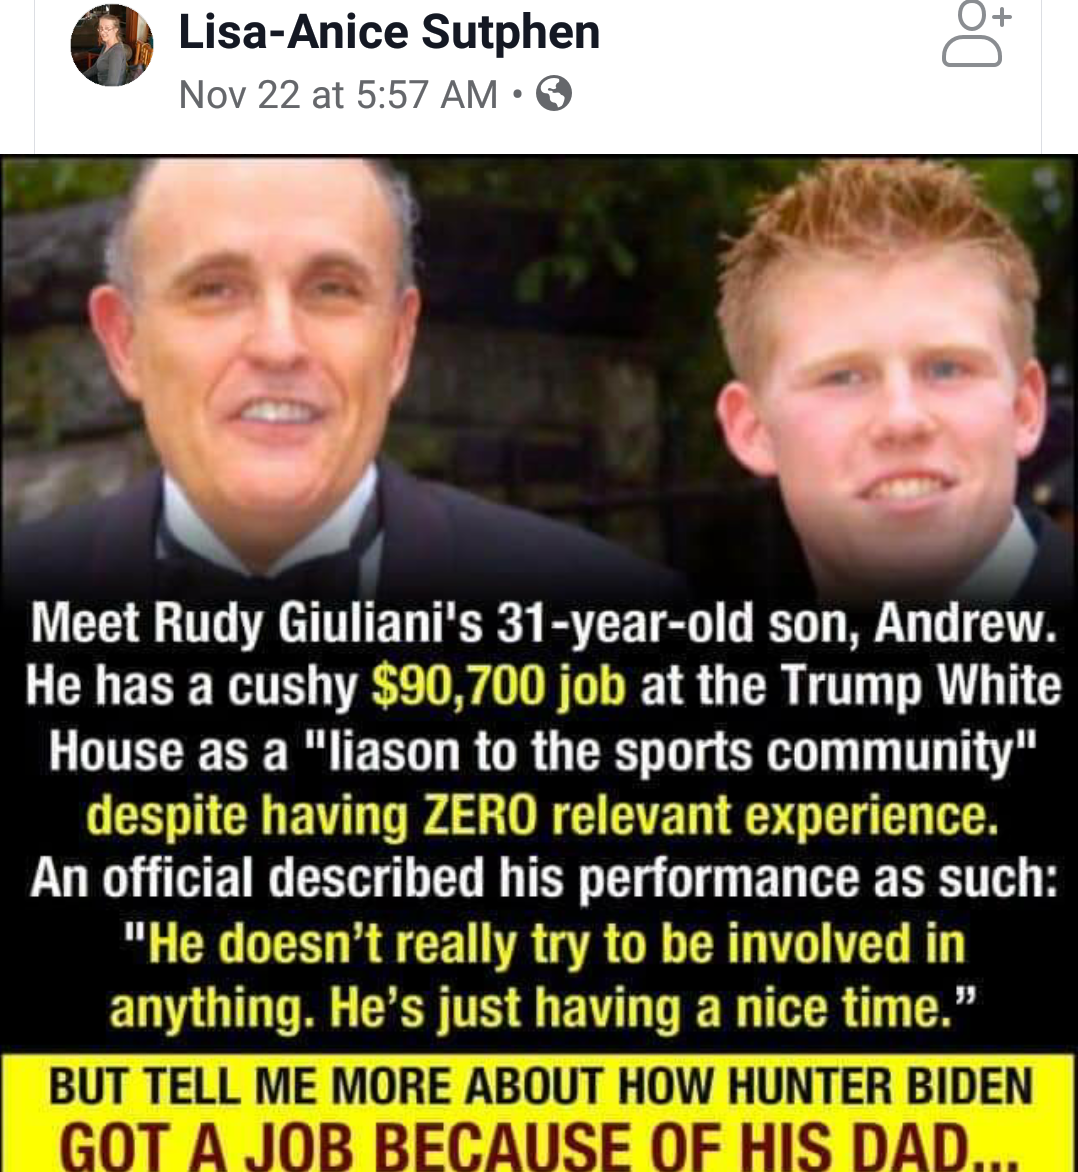 ON RUDY GIULIANI HYPOCRISY